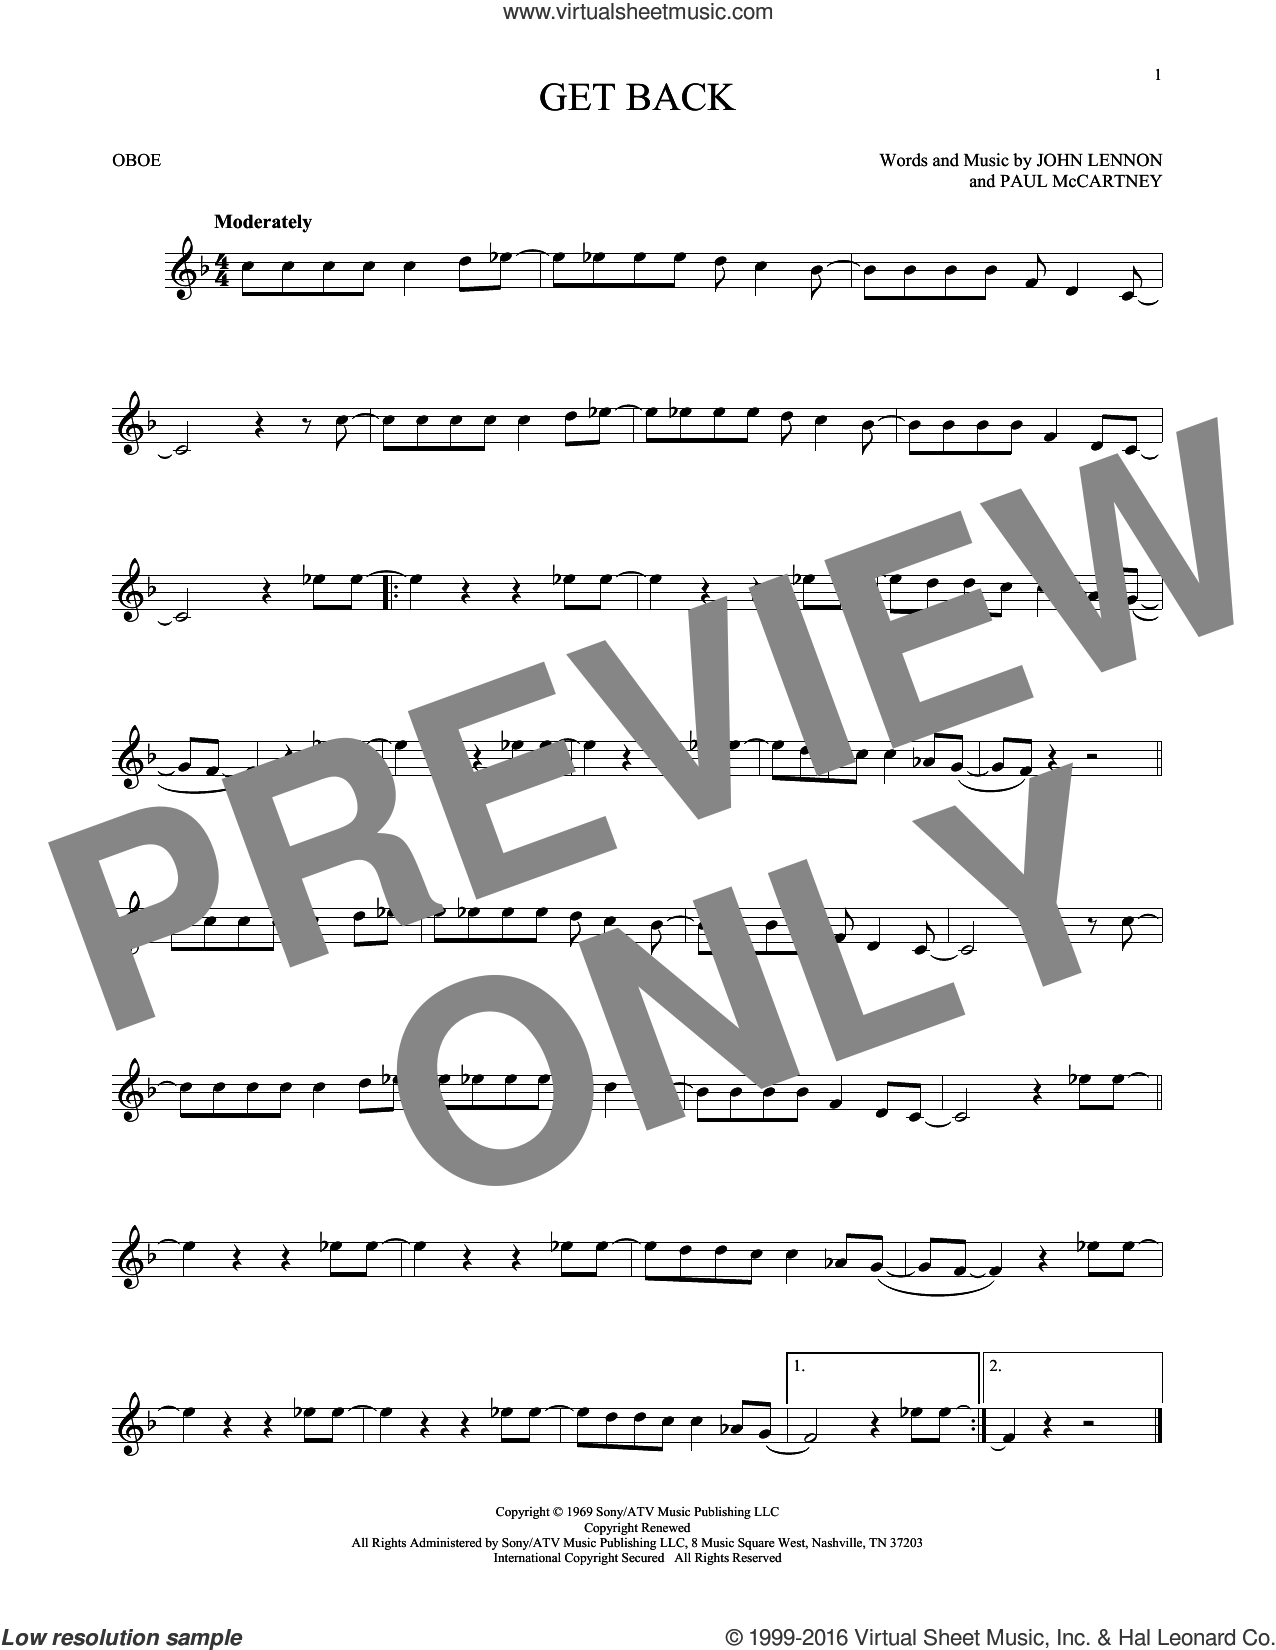 Get Back sheet music for oboe solo by Paul McCartney